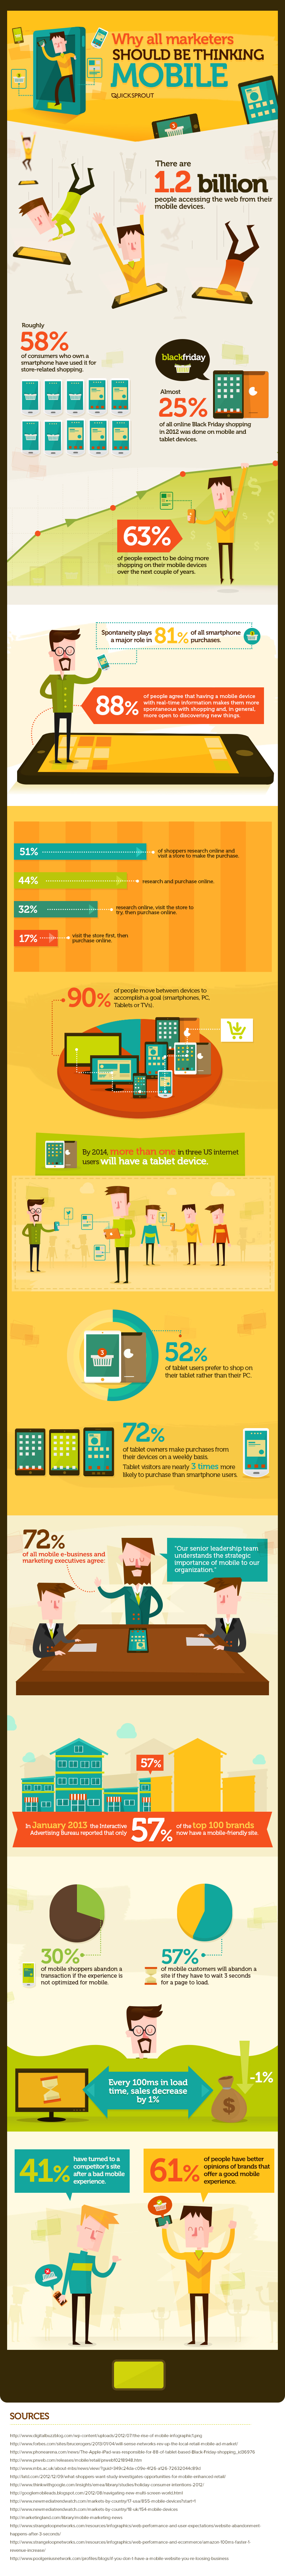 Why All Marketers Should Be Thinking Mobile